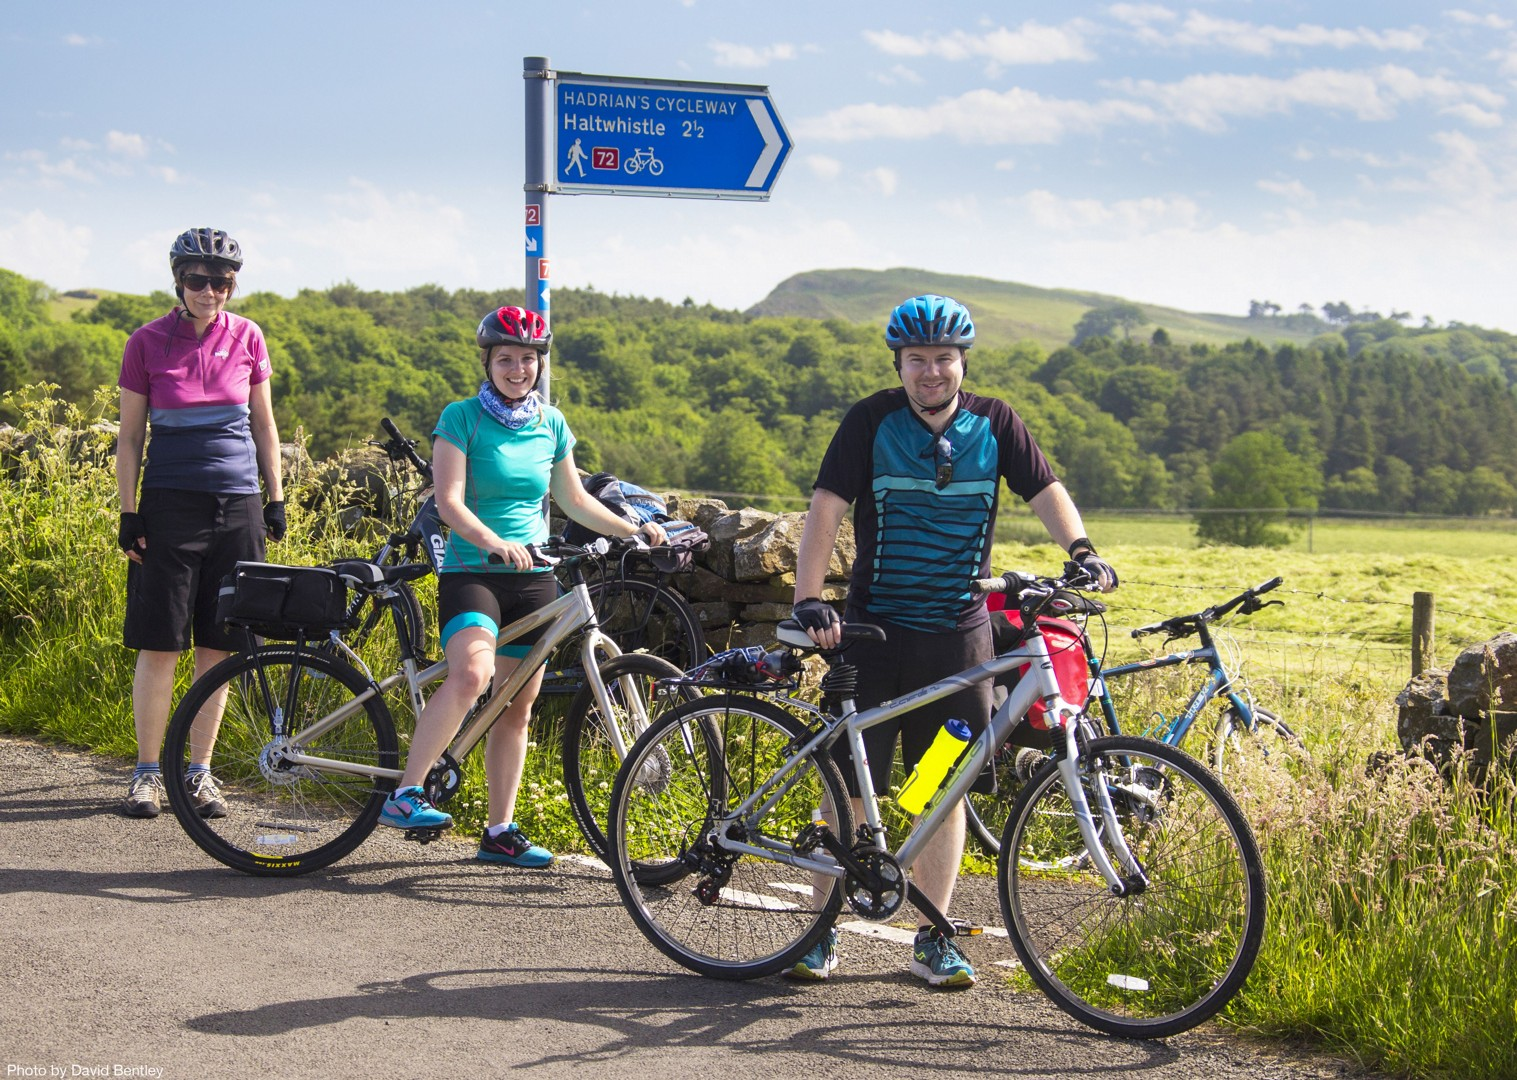 Self-Guided-Leisure-Cycling-Holiday-Hadrians-Cycleway-UK.jpg - UK - Hadrian's Cycleway - 6 Days Cycling - Self-Guided Leisure Cycling Holiday - Leisure Cycling